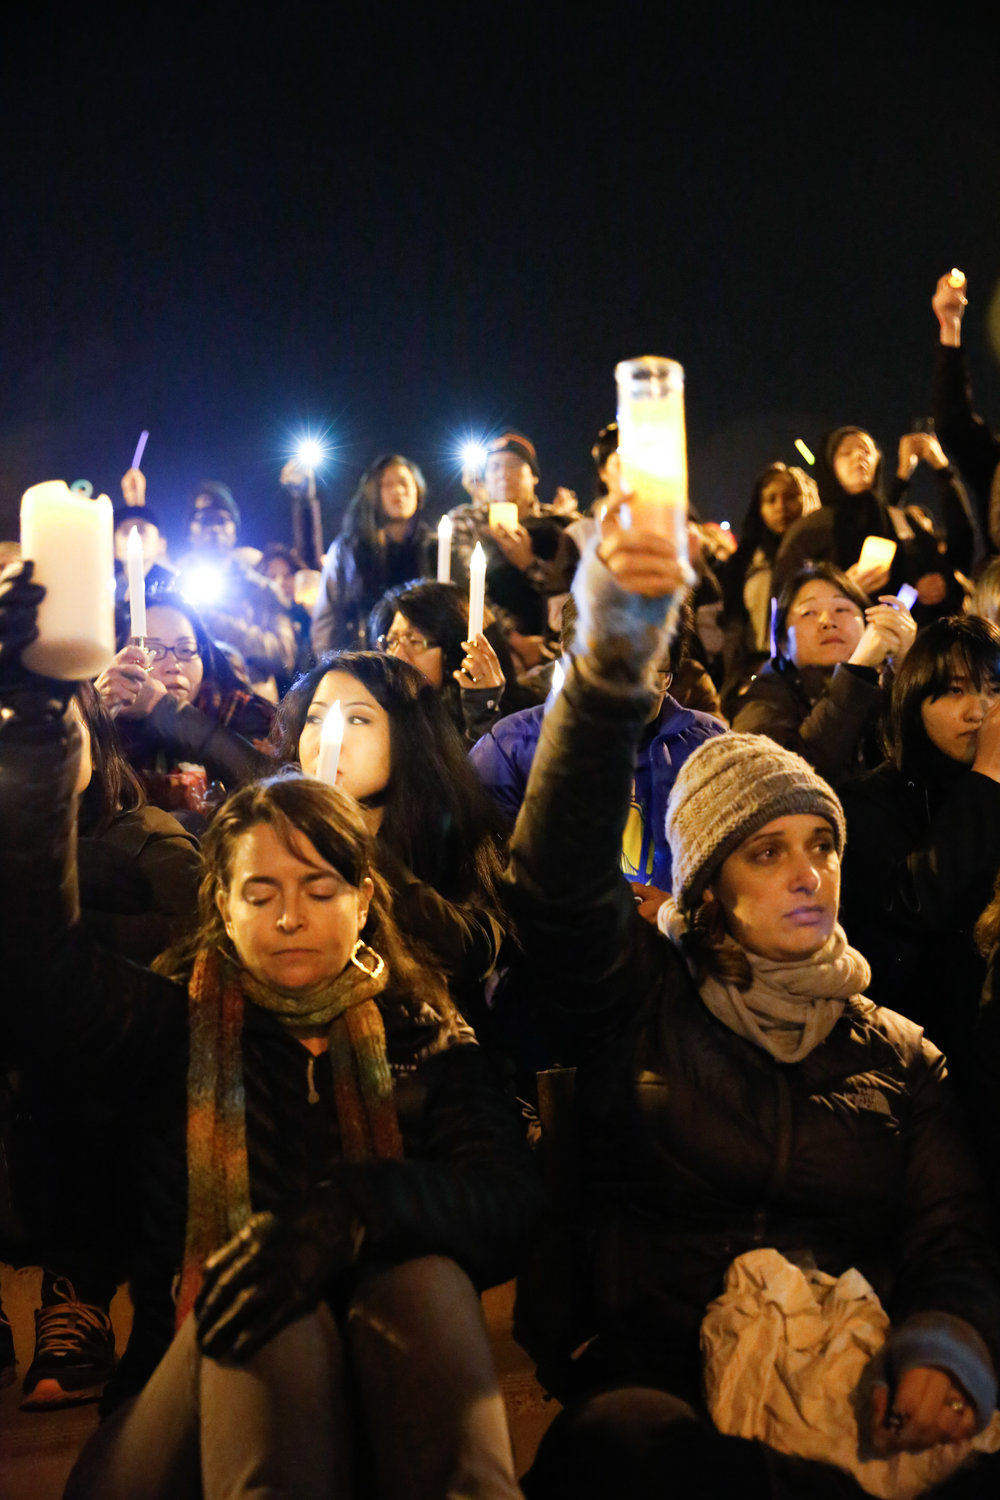 Mourners raise candles during a moment of silence at a vigil at Lake Merritt Pergola on Monday December 5, 2016. in honor of the 36 people who died in the Oakland Fire at the Ghost Ship warehouse party Friday, December 2.